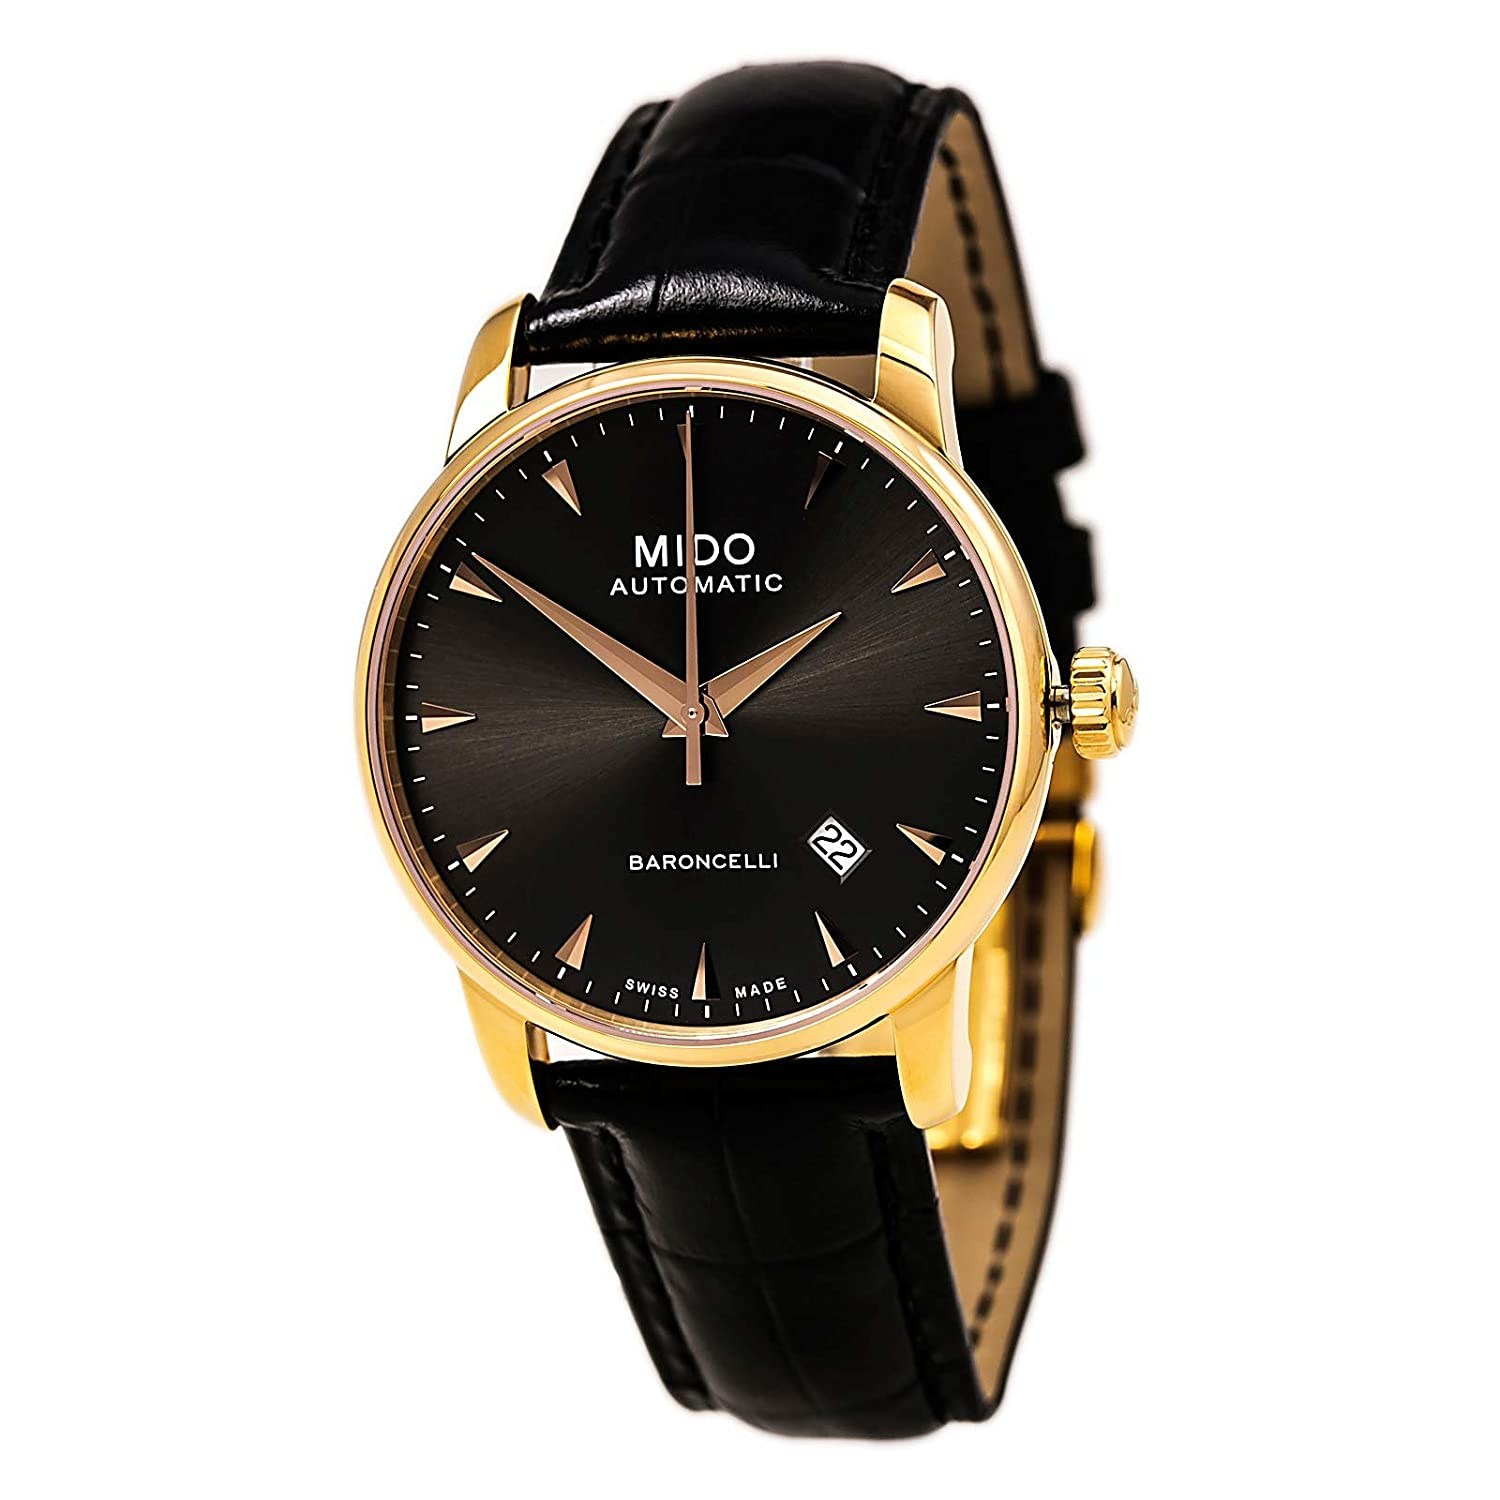 Amazon.com: Mido Mens Watches Baroncelli Automatic M8600.3.13.4 - 2 3: Watches